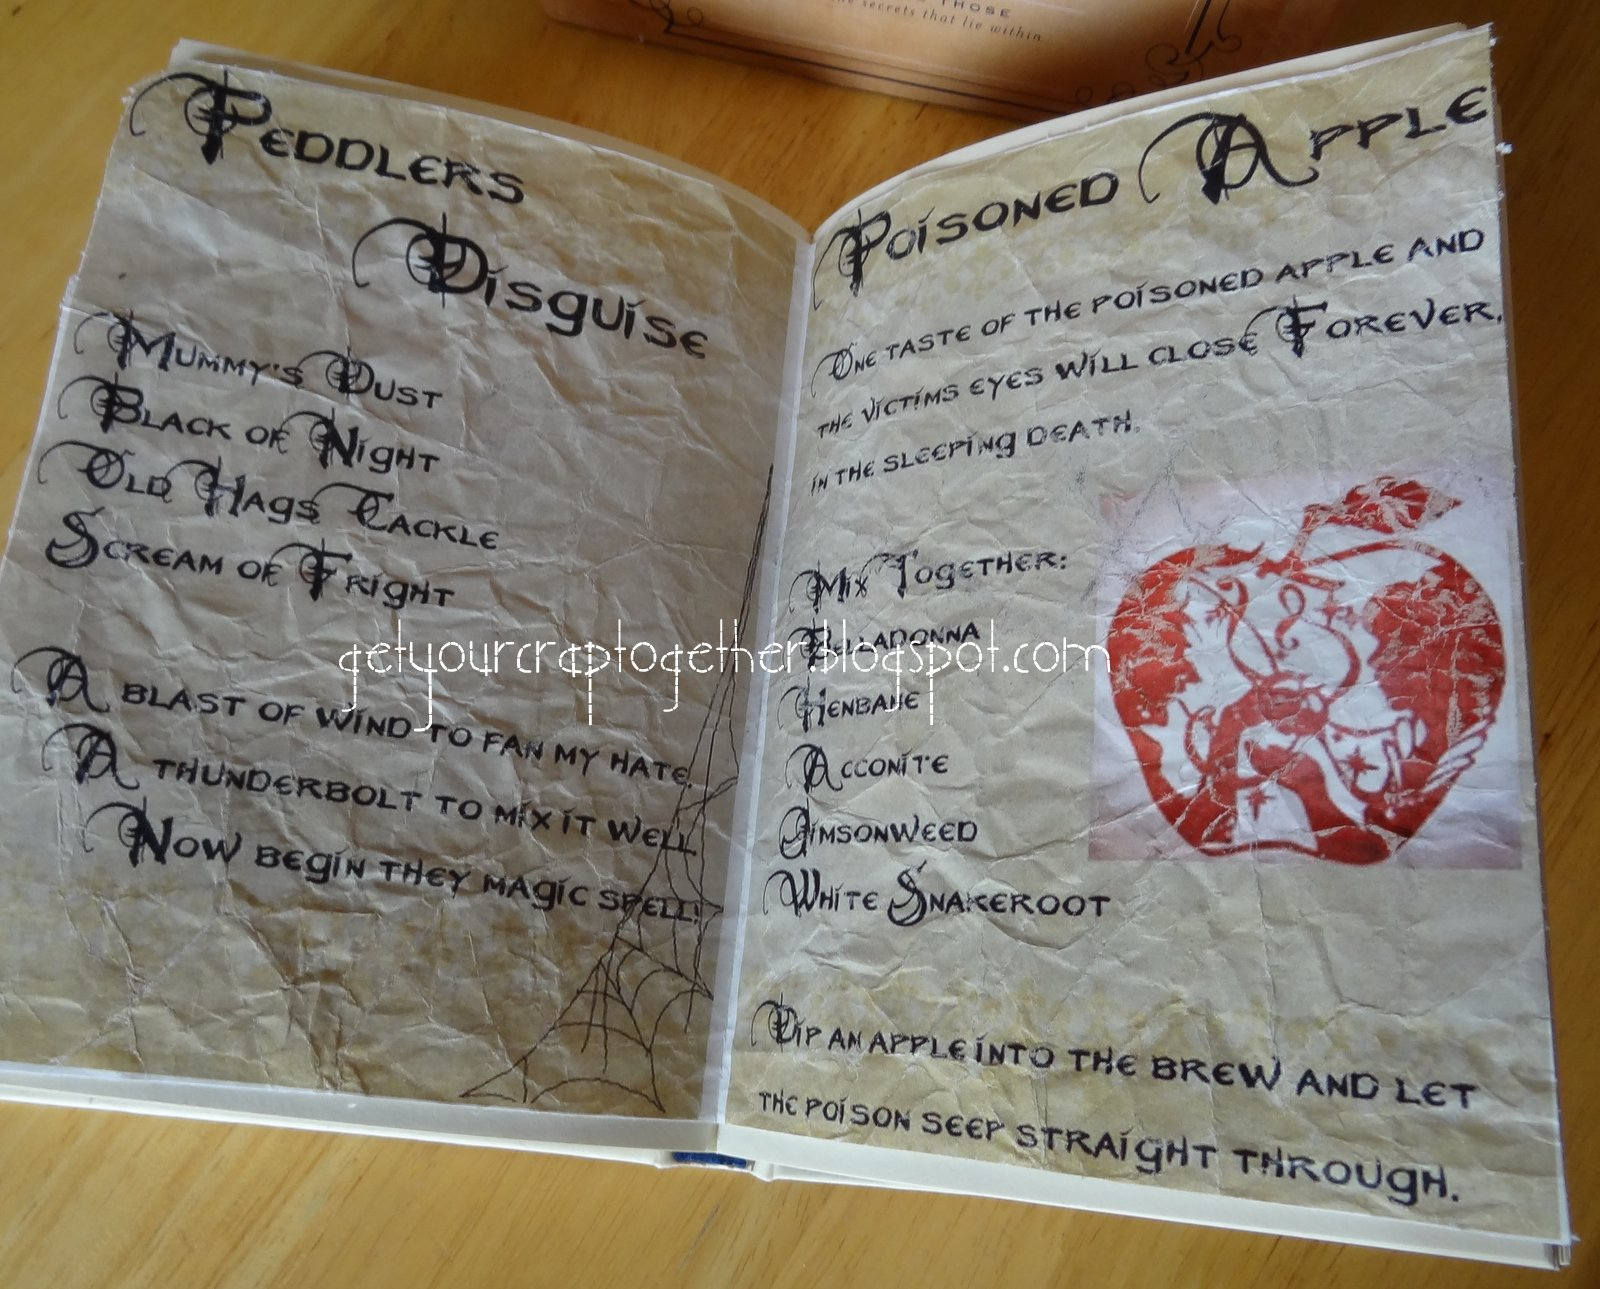 get your crap together 31 days of halloween spell books